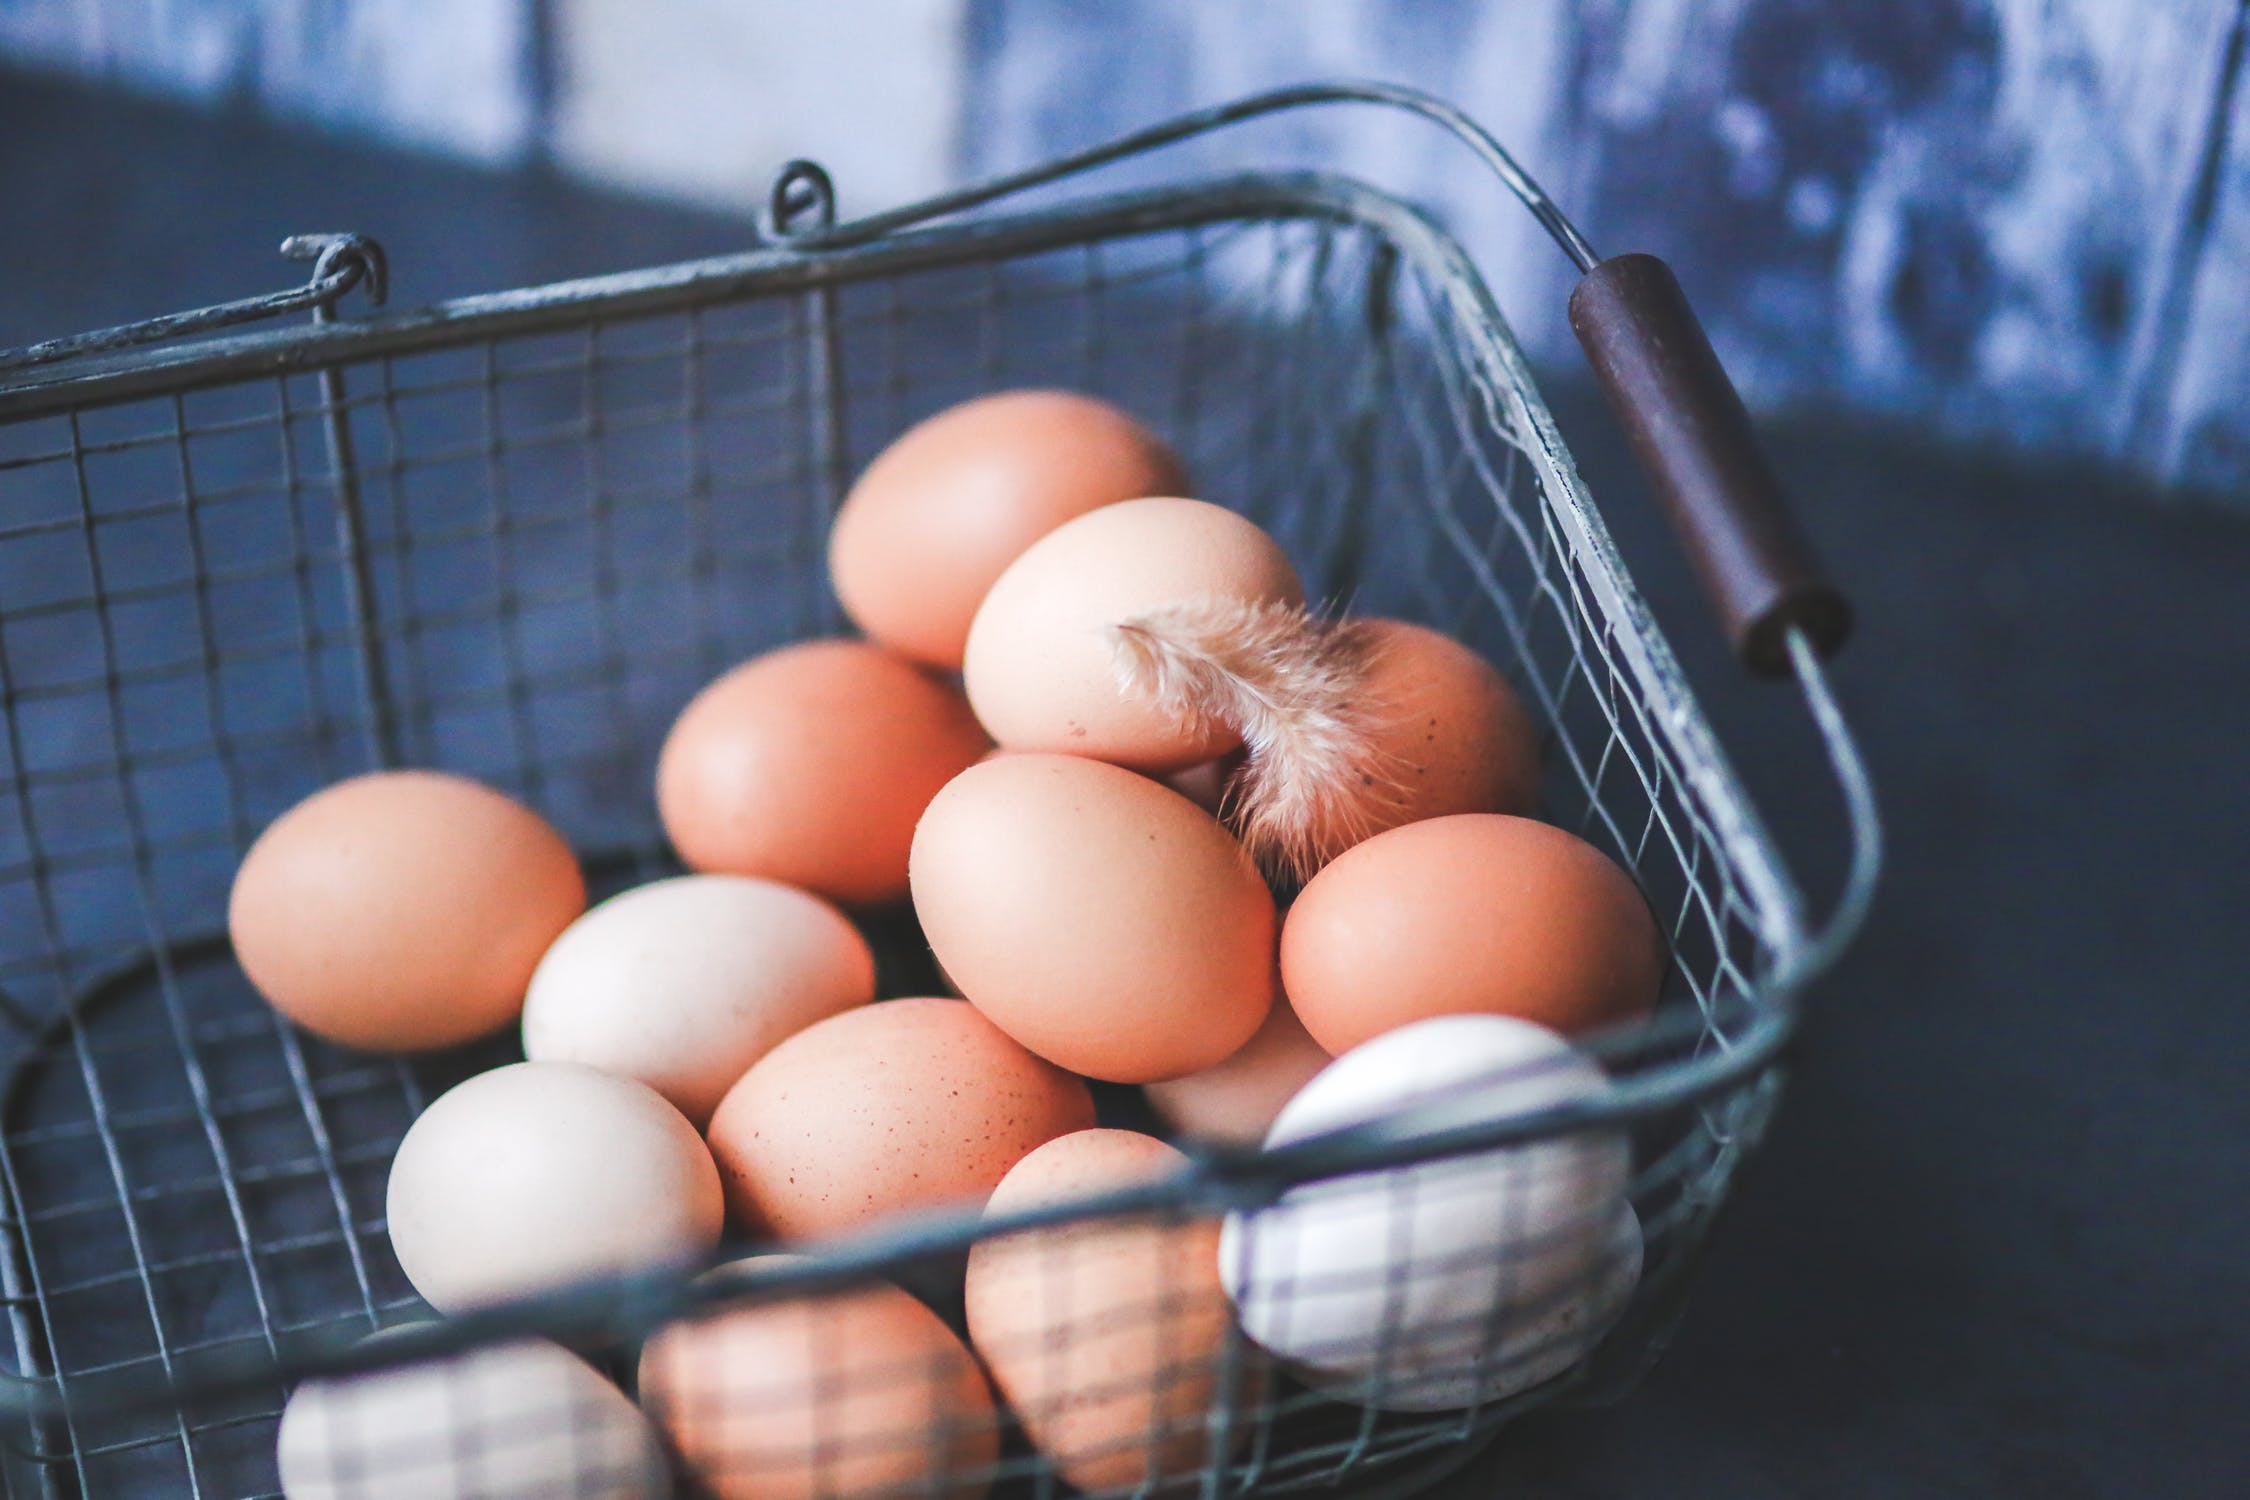 Do you keep all of your eggs in the same basket?